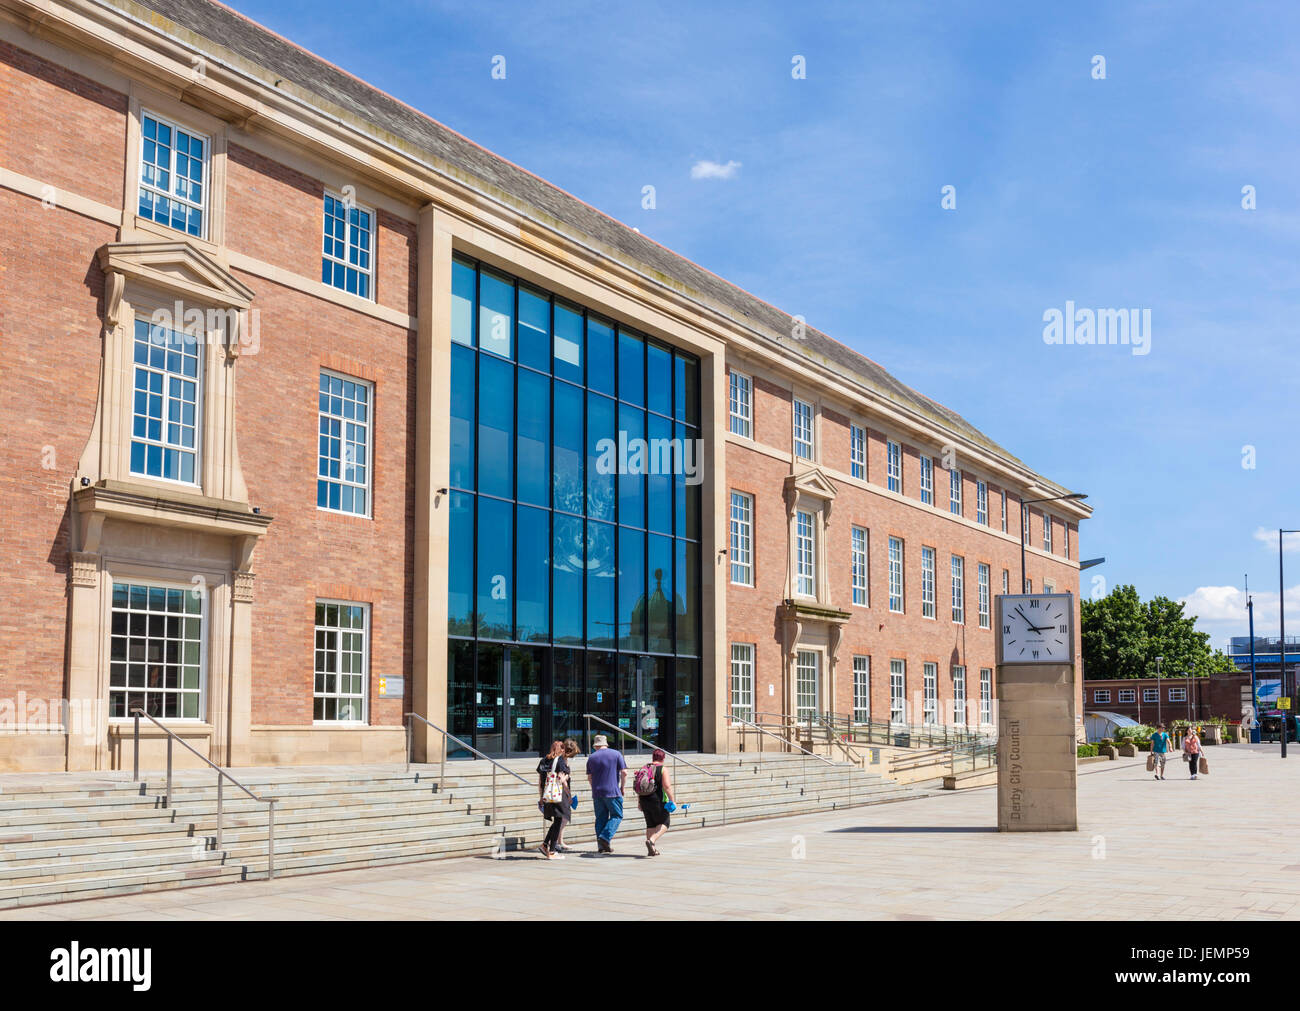 Derby council house Derby city centre Derbyshire England East midlands UK GB Europe - Stock Image